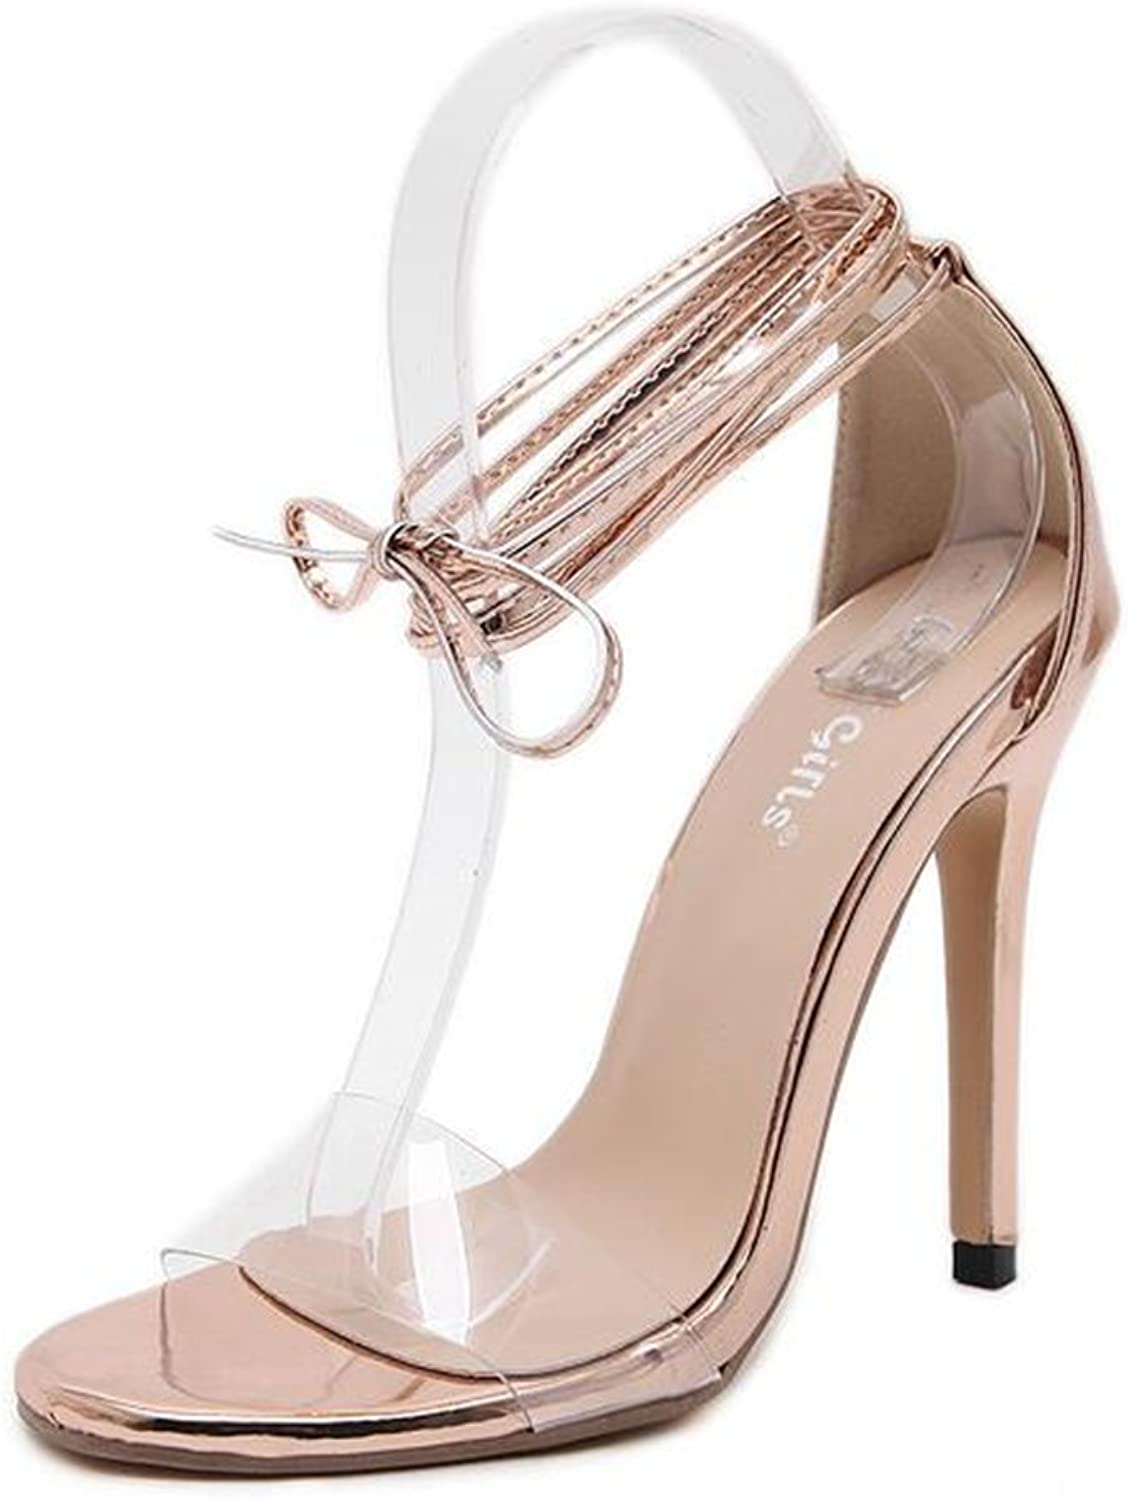 MODEOK Summer Cross-Strap Sandals Women's Transparent Stiletto Heel Toe Heel